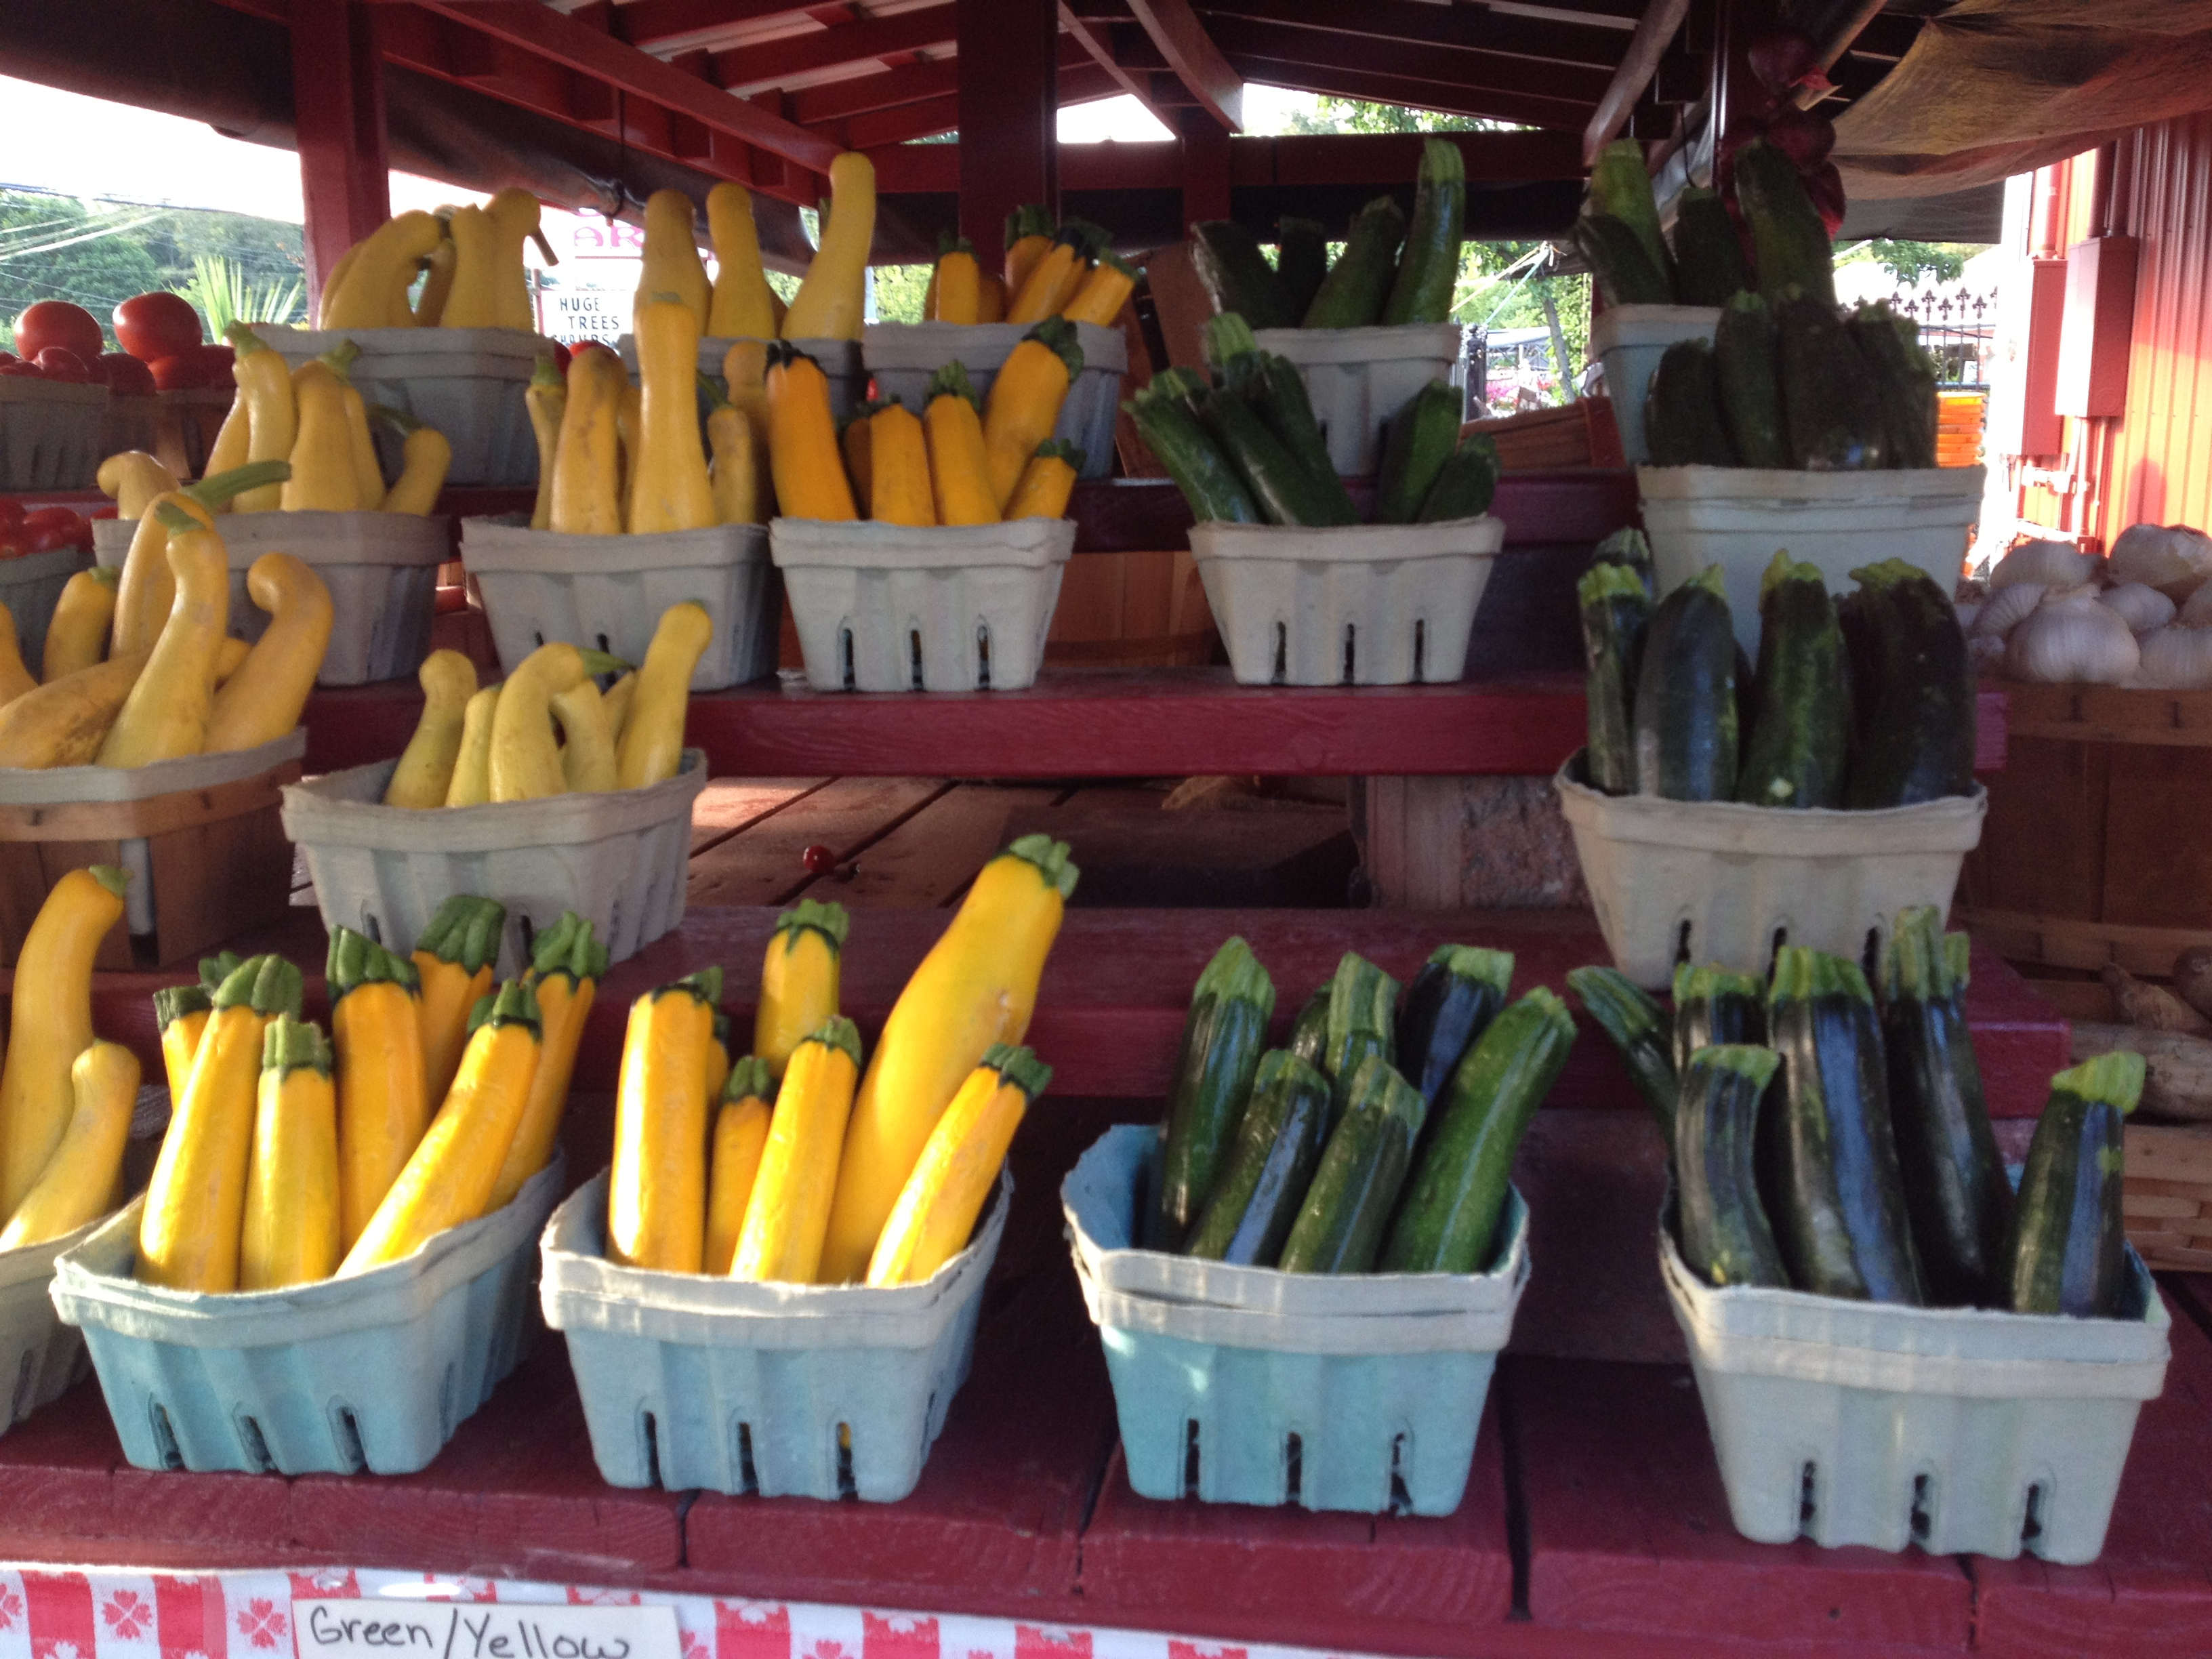 Zucchini and yellow squash at a farmstand